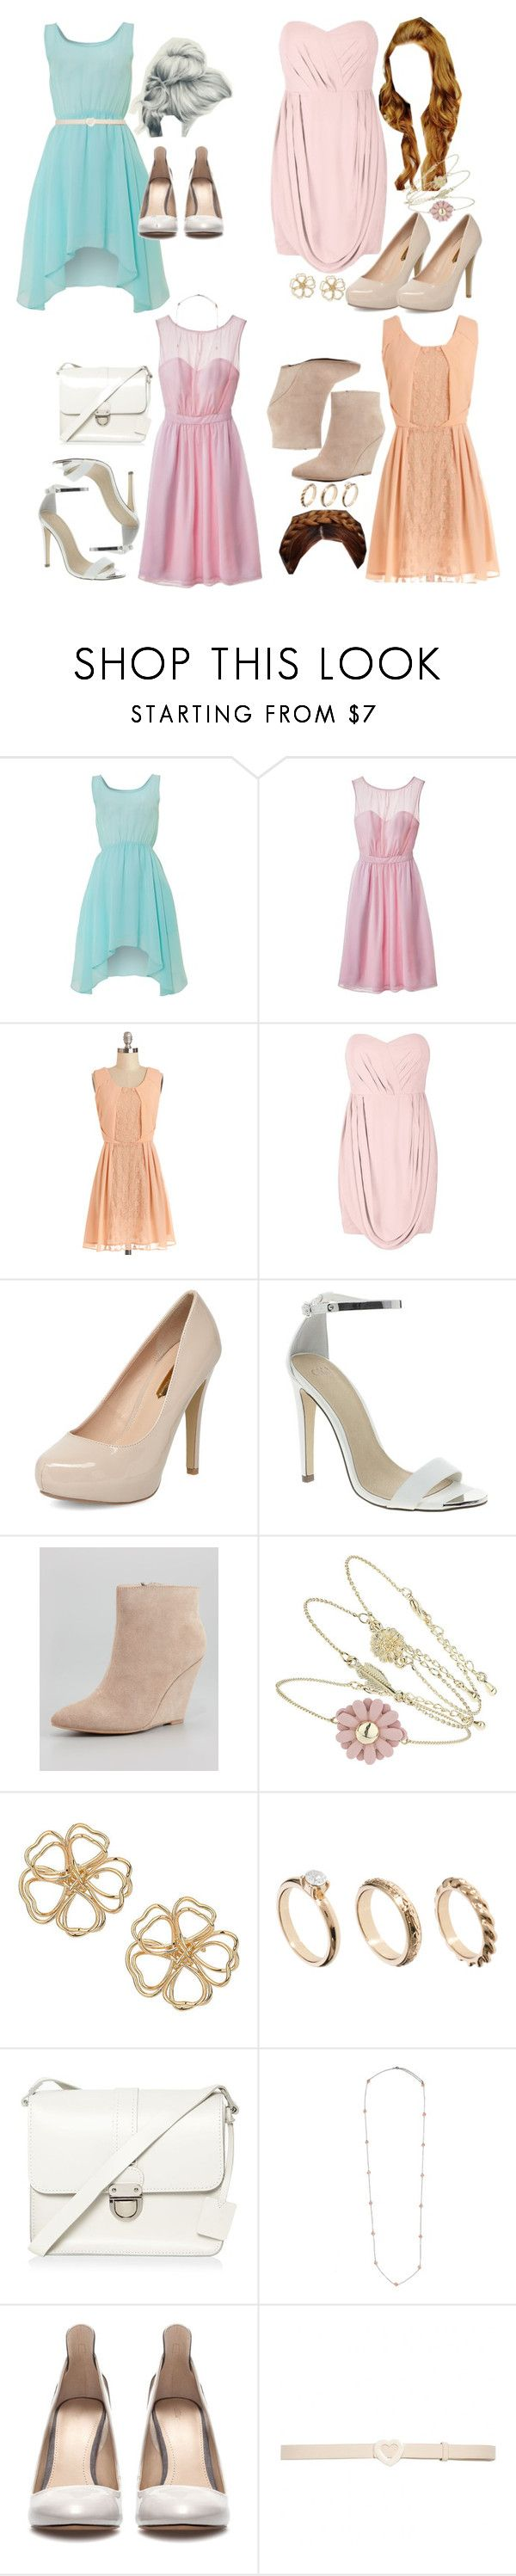 Lydia Inspired Pastel-Themed Bridesmaid Outfits by veterization on Polyvore featuring Glamorous, Tevolio, Seychelles, Zara, Dorothy Perkins, ASOS, H! by Henry Holland, Topshop, Ingenious Jewellery and Alice + Olivia